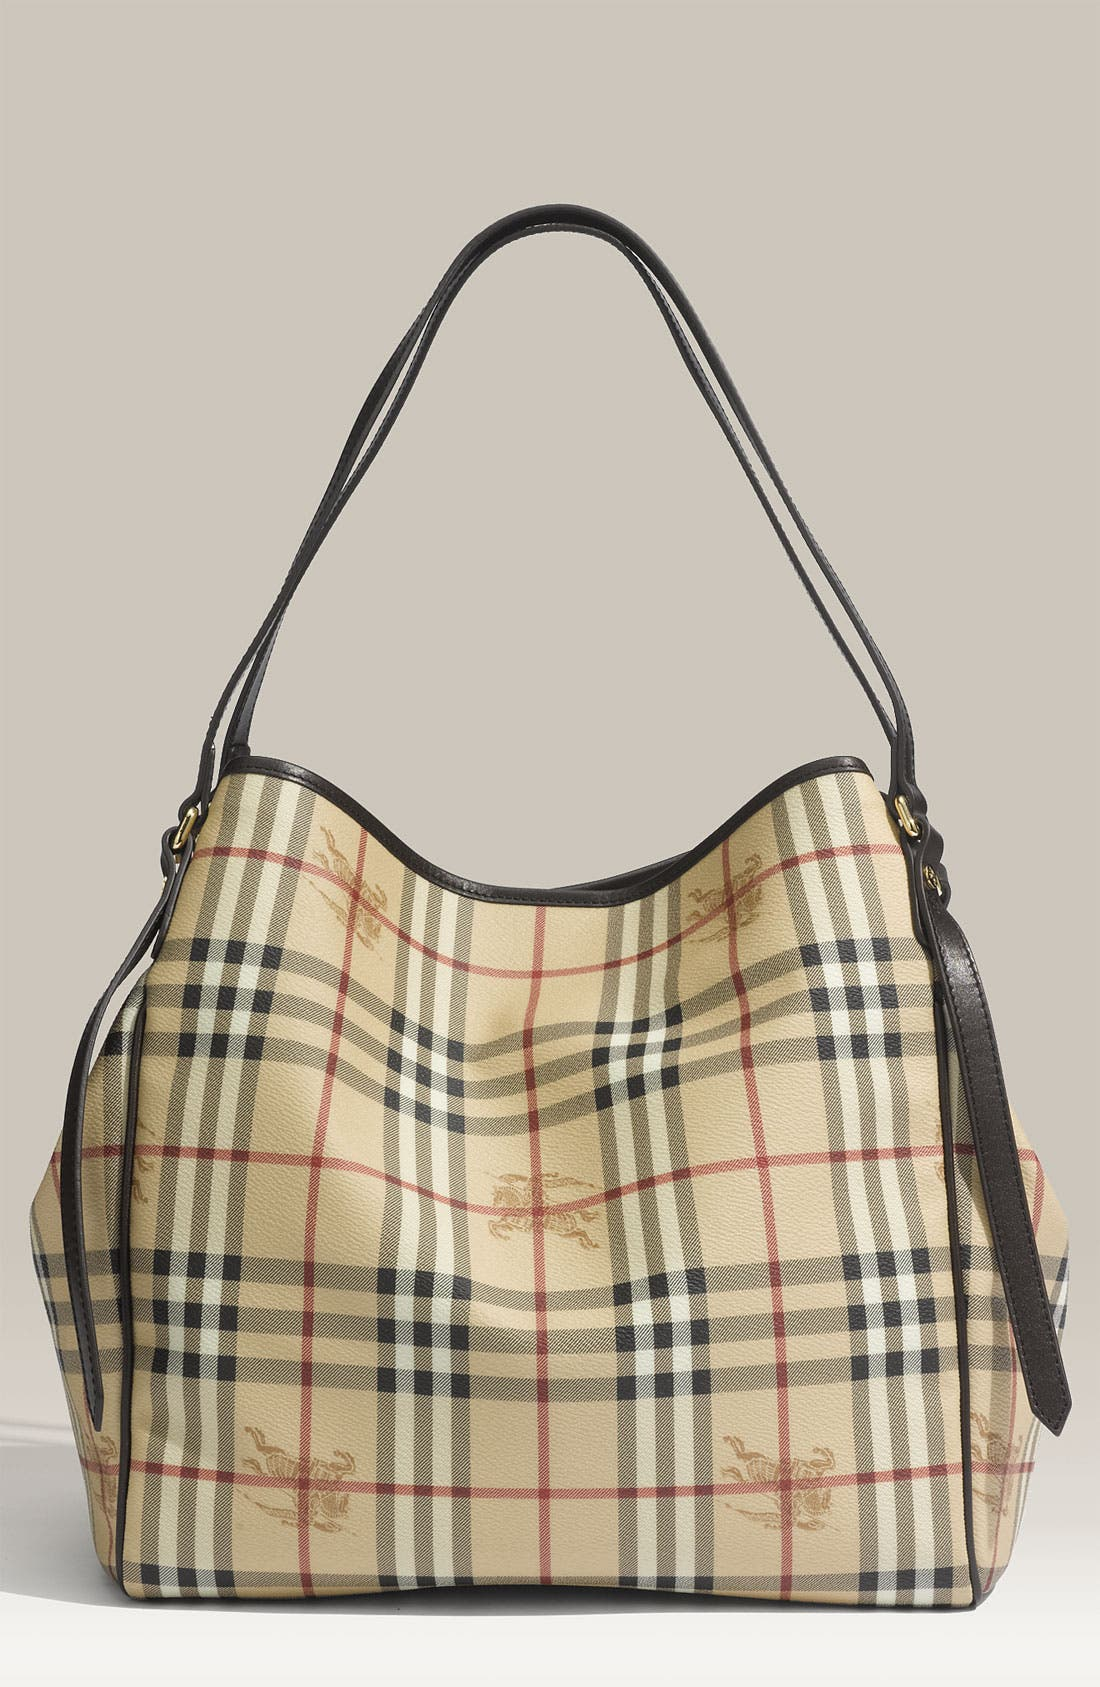 Main Image - Burberry 'Medium Haymarket Check' Shoulder Bag